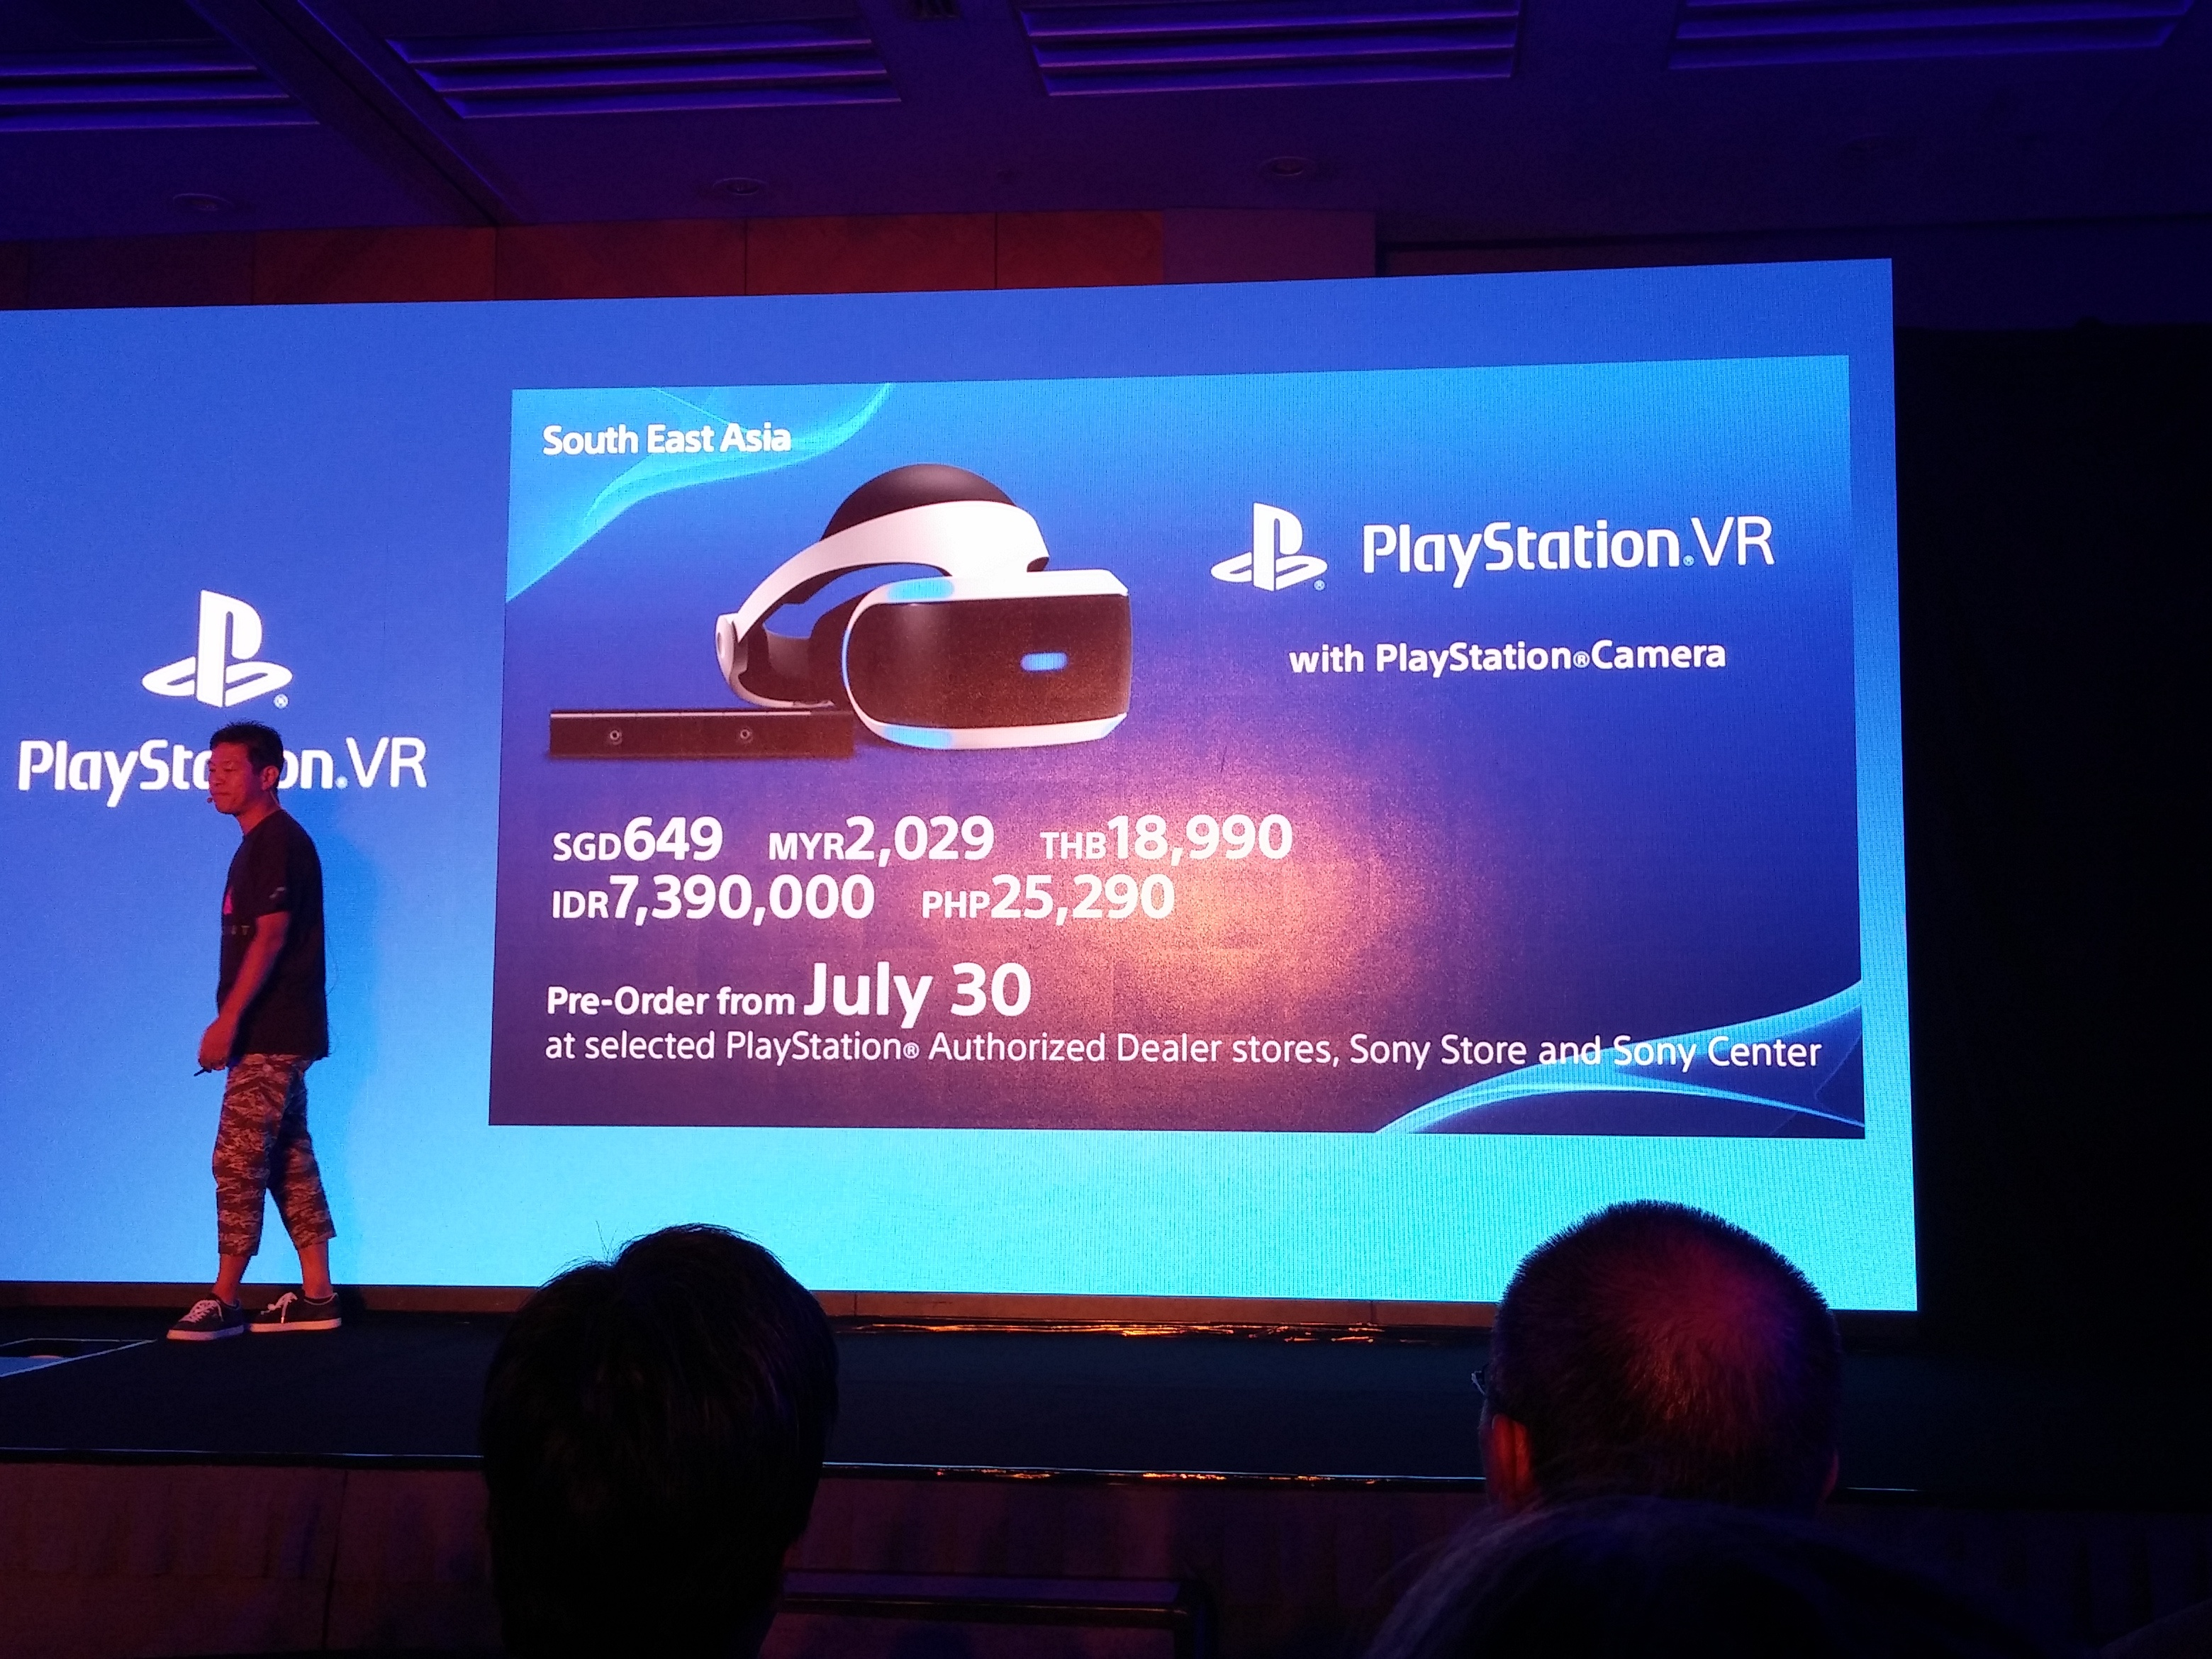 Pricing for the PlayStation VR with PlayStation Camera